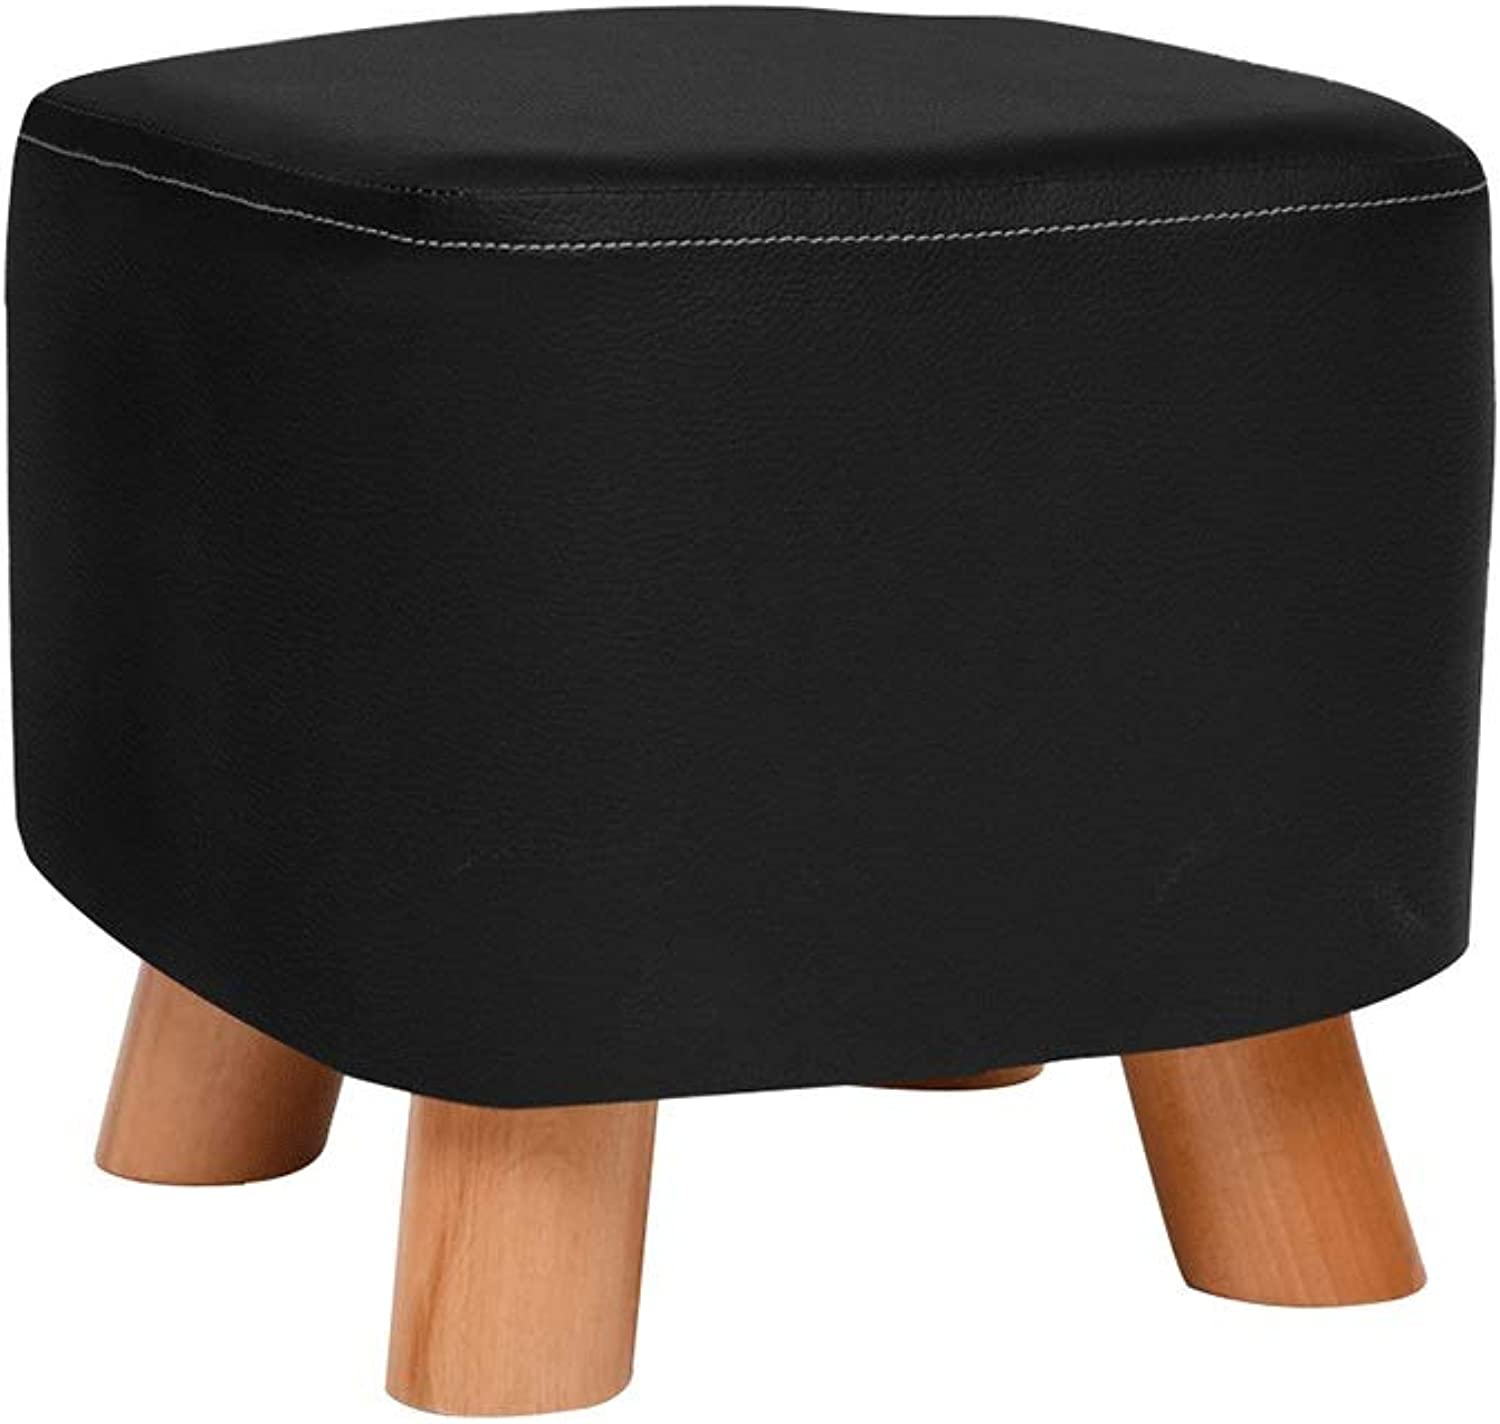 Zcxbhd Leather,Solid Wood Change shoes Bench Footstool,Sofa Bench,Low Stool,Creative shoes Stool Load 150kg (color   Black)